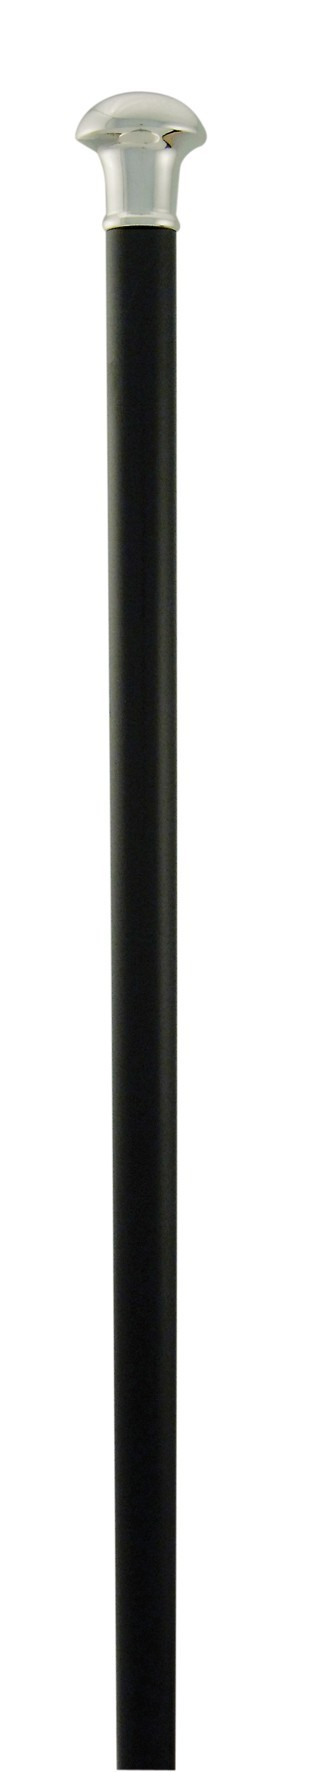 Classic Canes Silver plated formal cap stick on black hardwood shaft